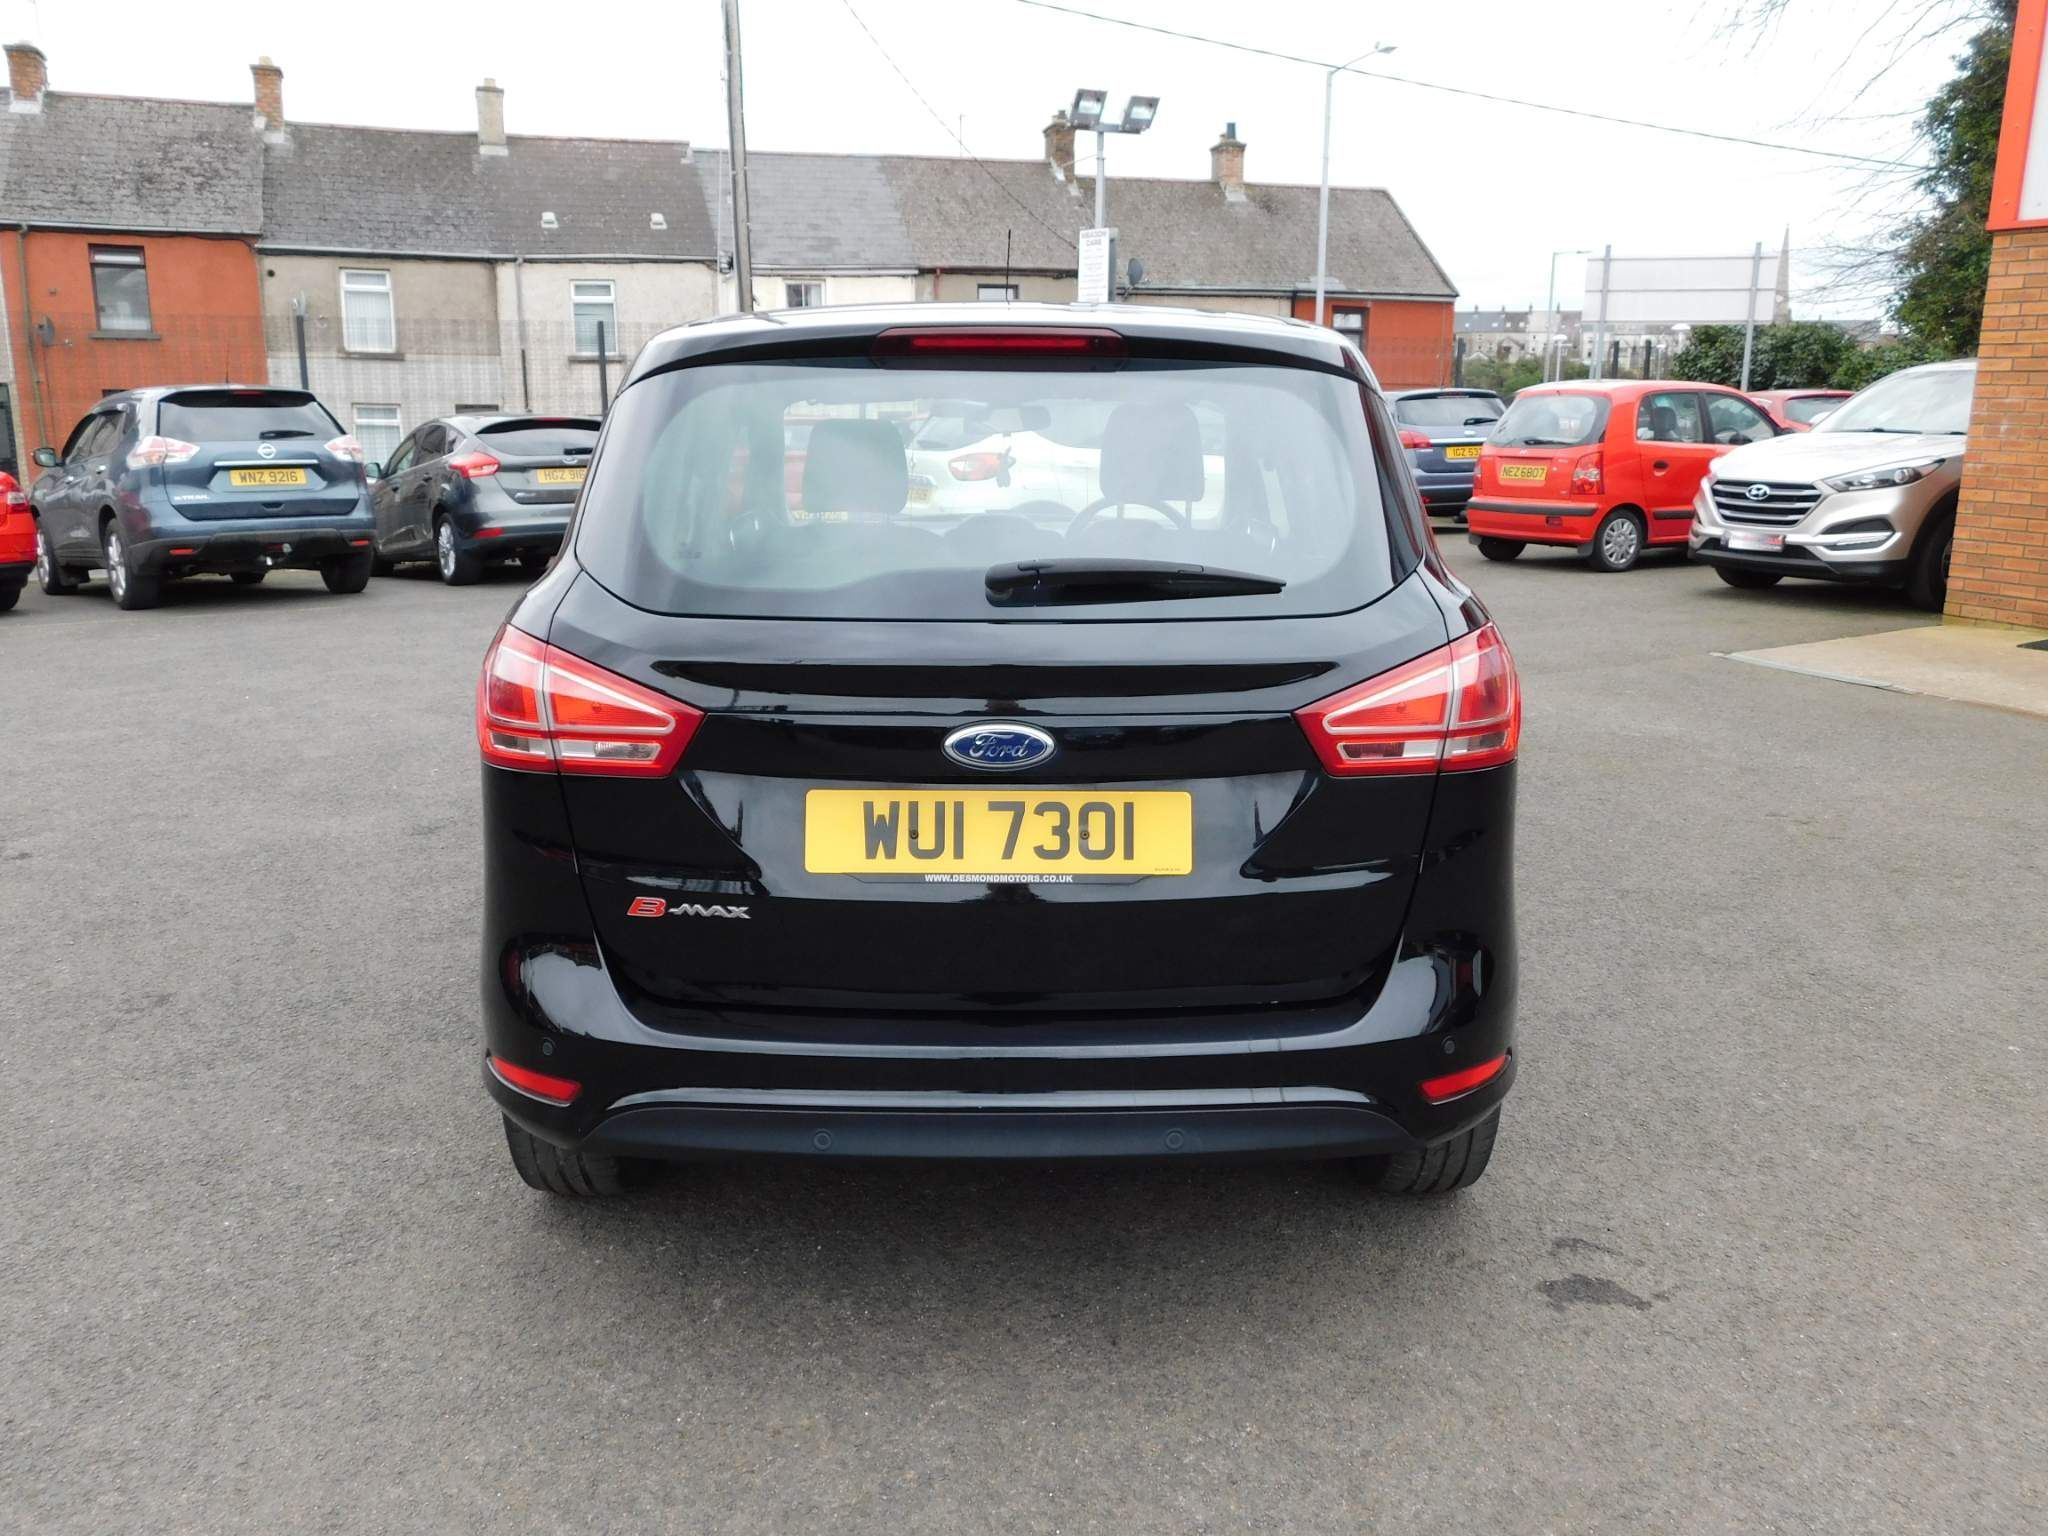 2018 FORD B-Max 1.5 TDCi Zetec Navigator (s/s) Diesel Manual  – Meadow Cars Carrickfergus full